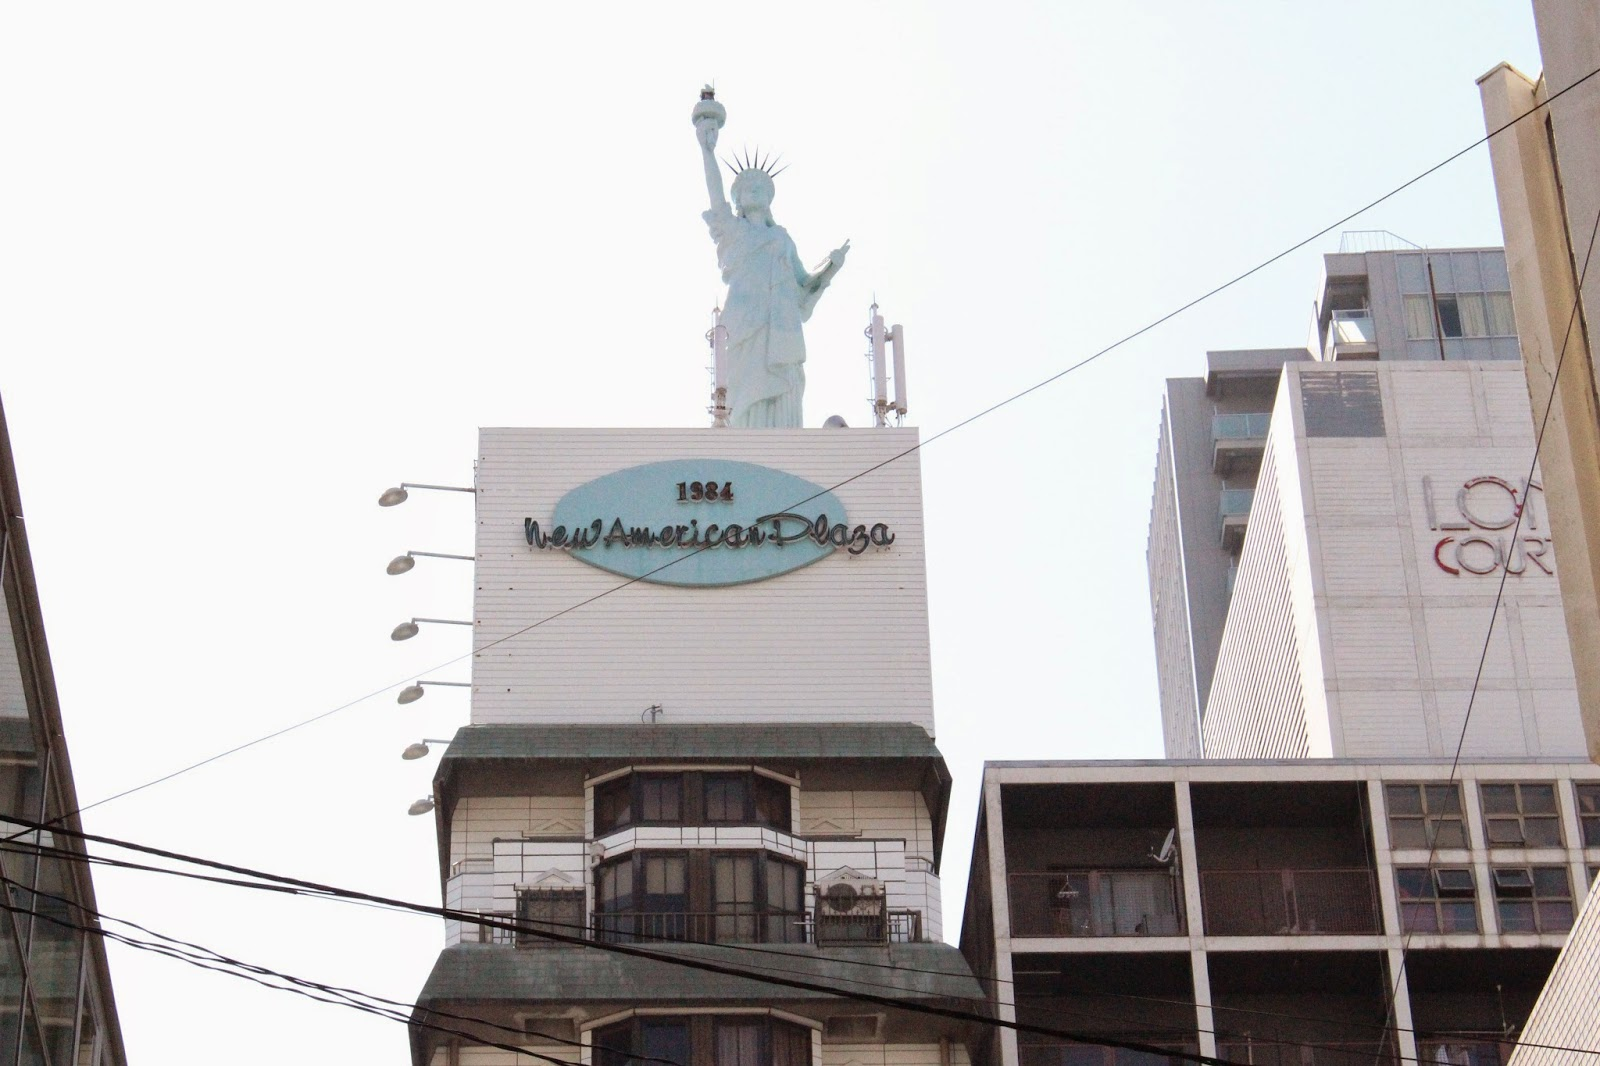 Mandarake and Amerikamura (America Village) in Osaka, Japan